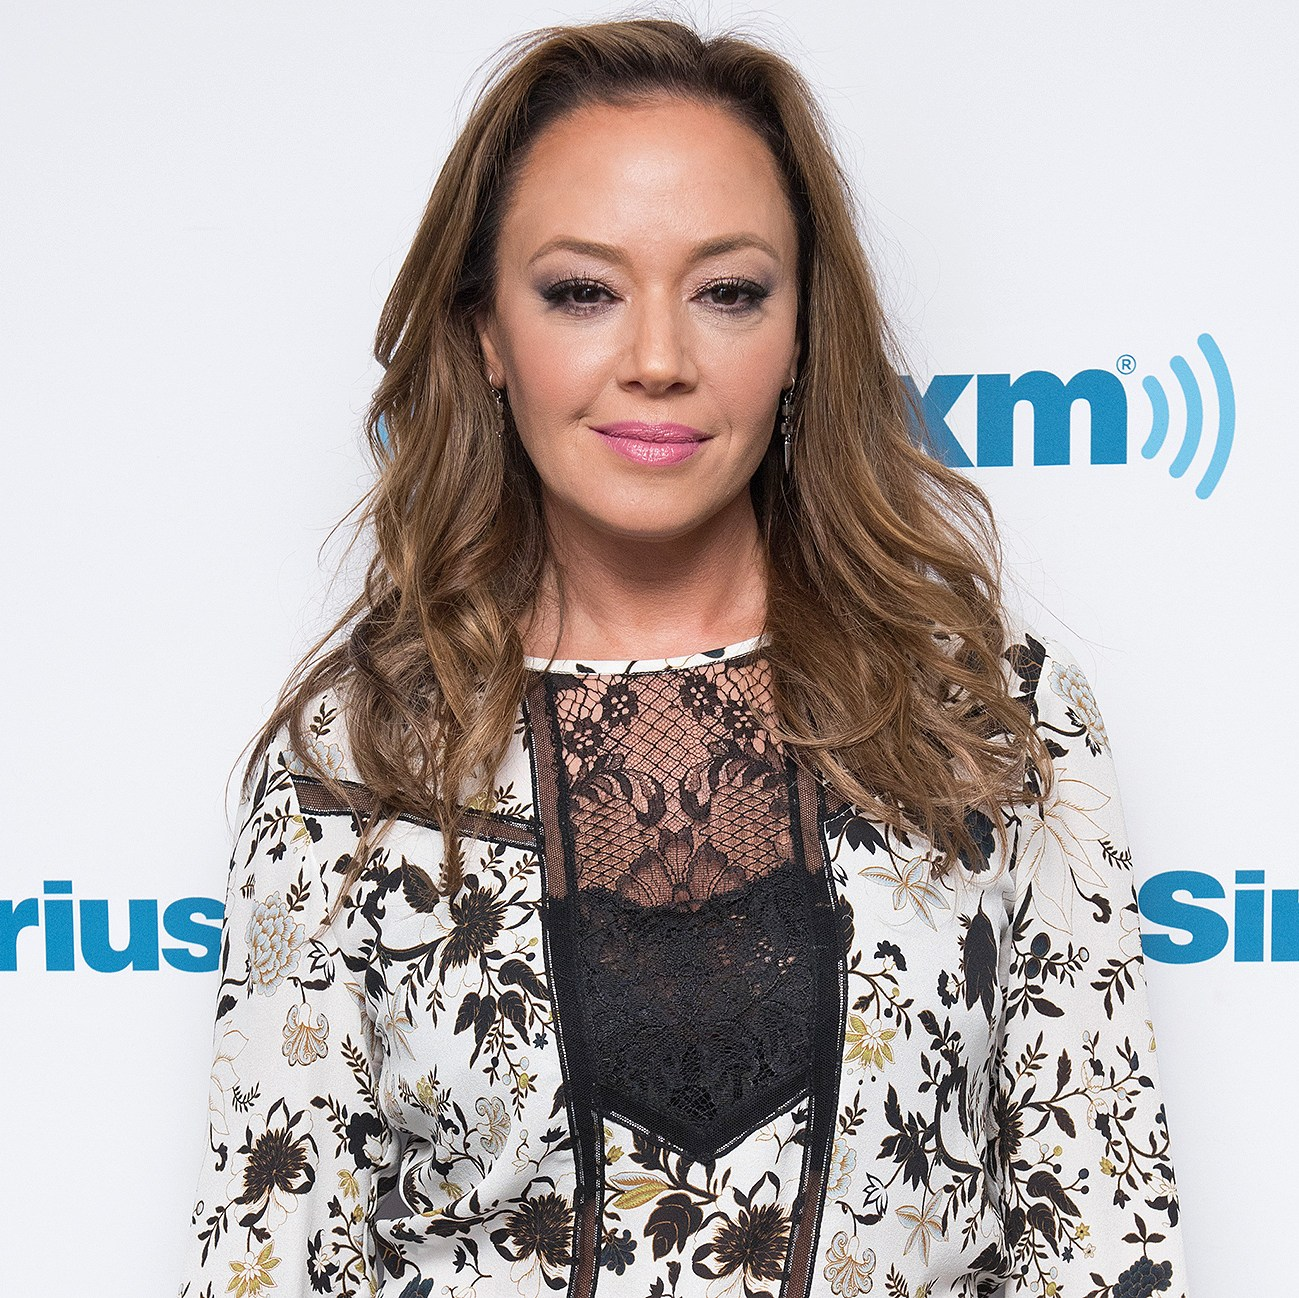 Leah Remini, Scientology